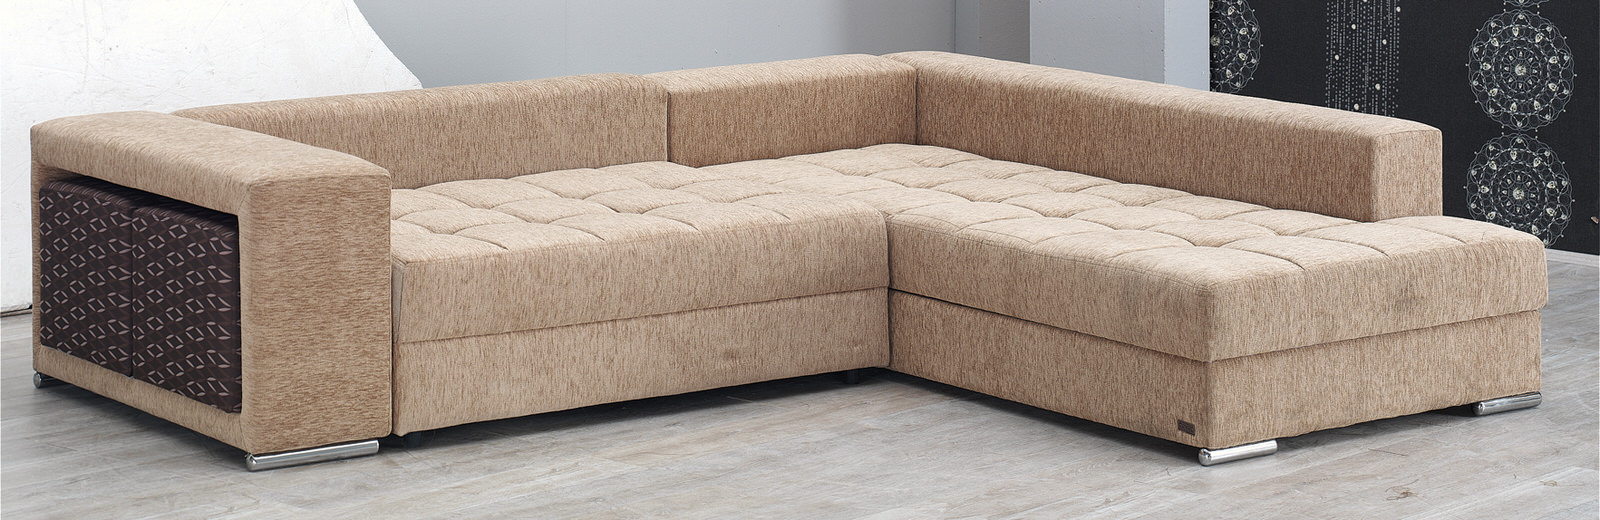 Los angeles sectional sofa set by empire furniture usa for Modern sectional sofa in los angeles